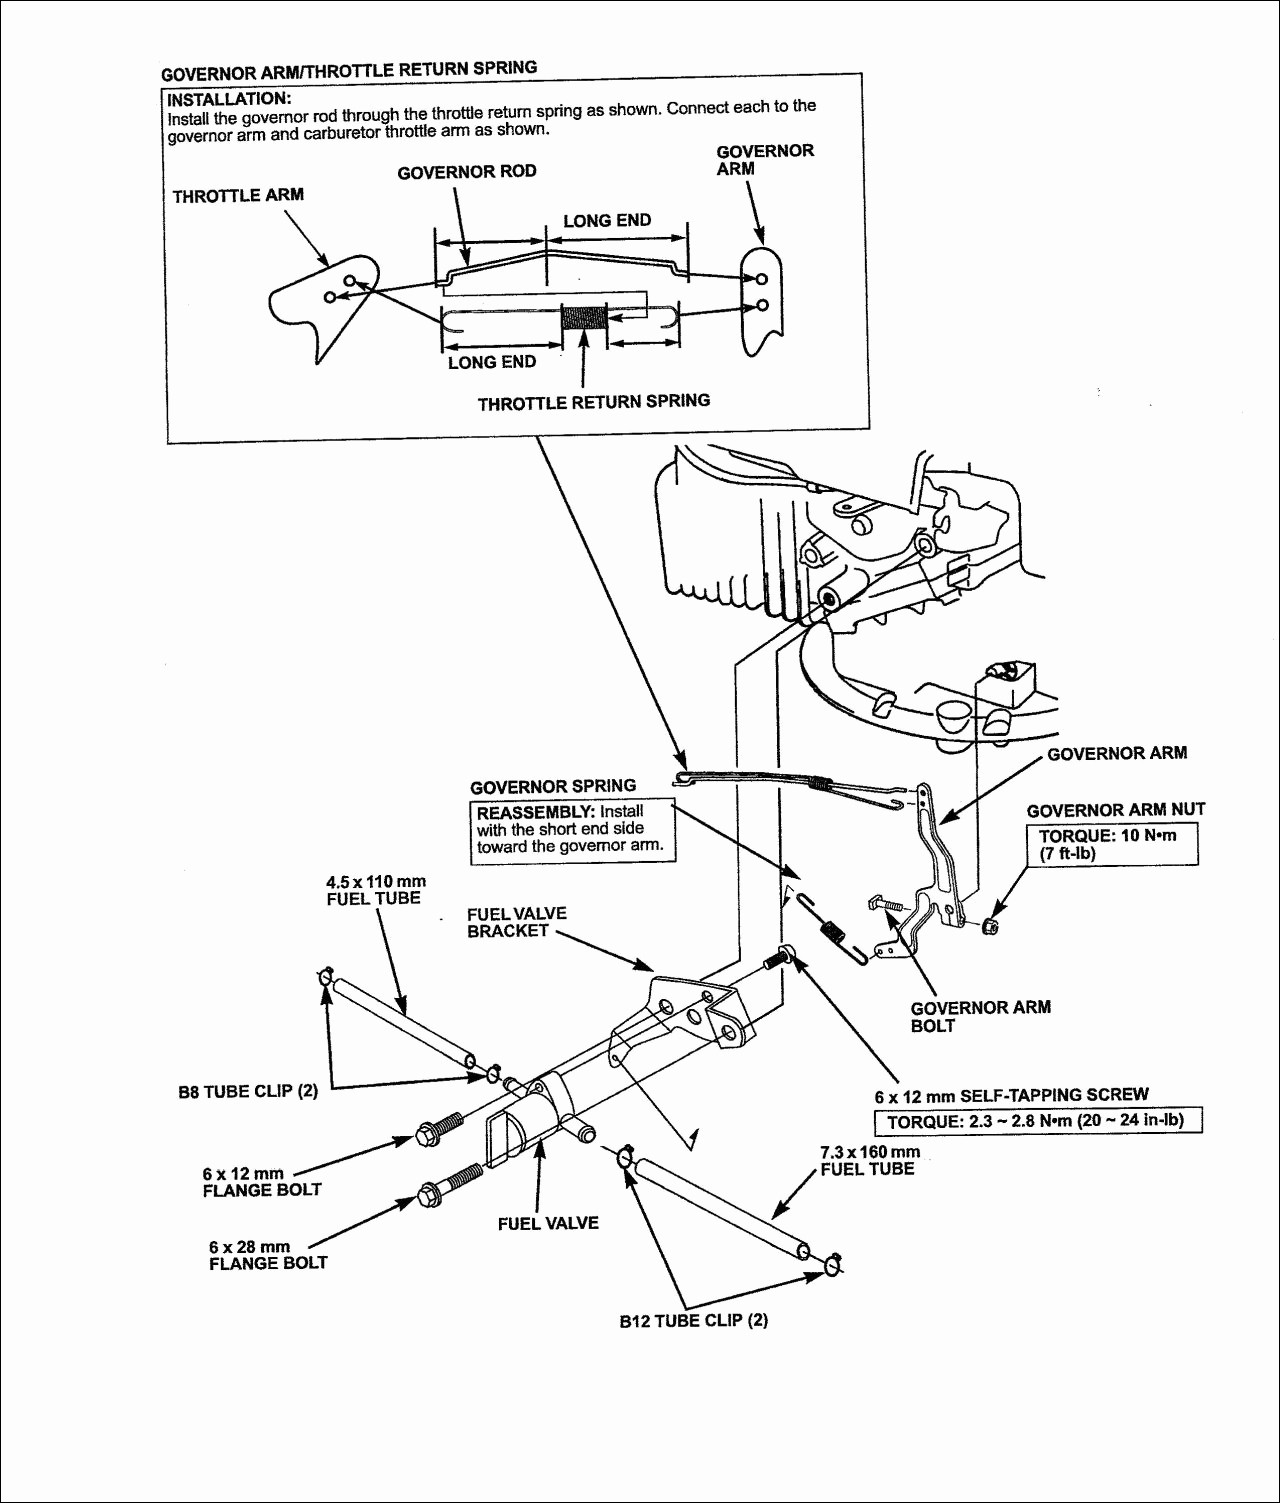 2009 ford focu fuse box location wiring diagram database2007 ford escape fuse diagram wiring diagram database 2002 ford focus fuse diagram 2009 ford focu fuse box location